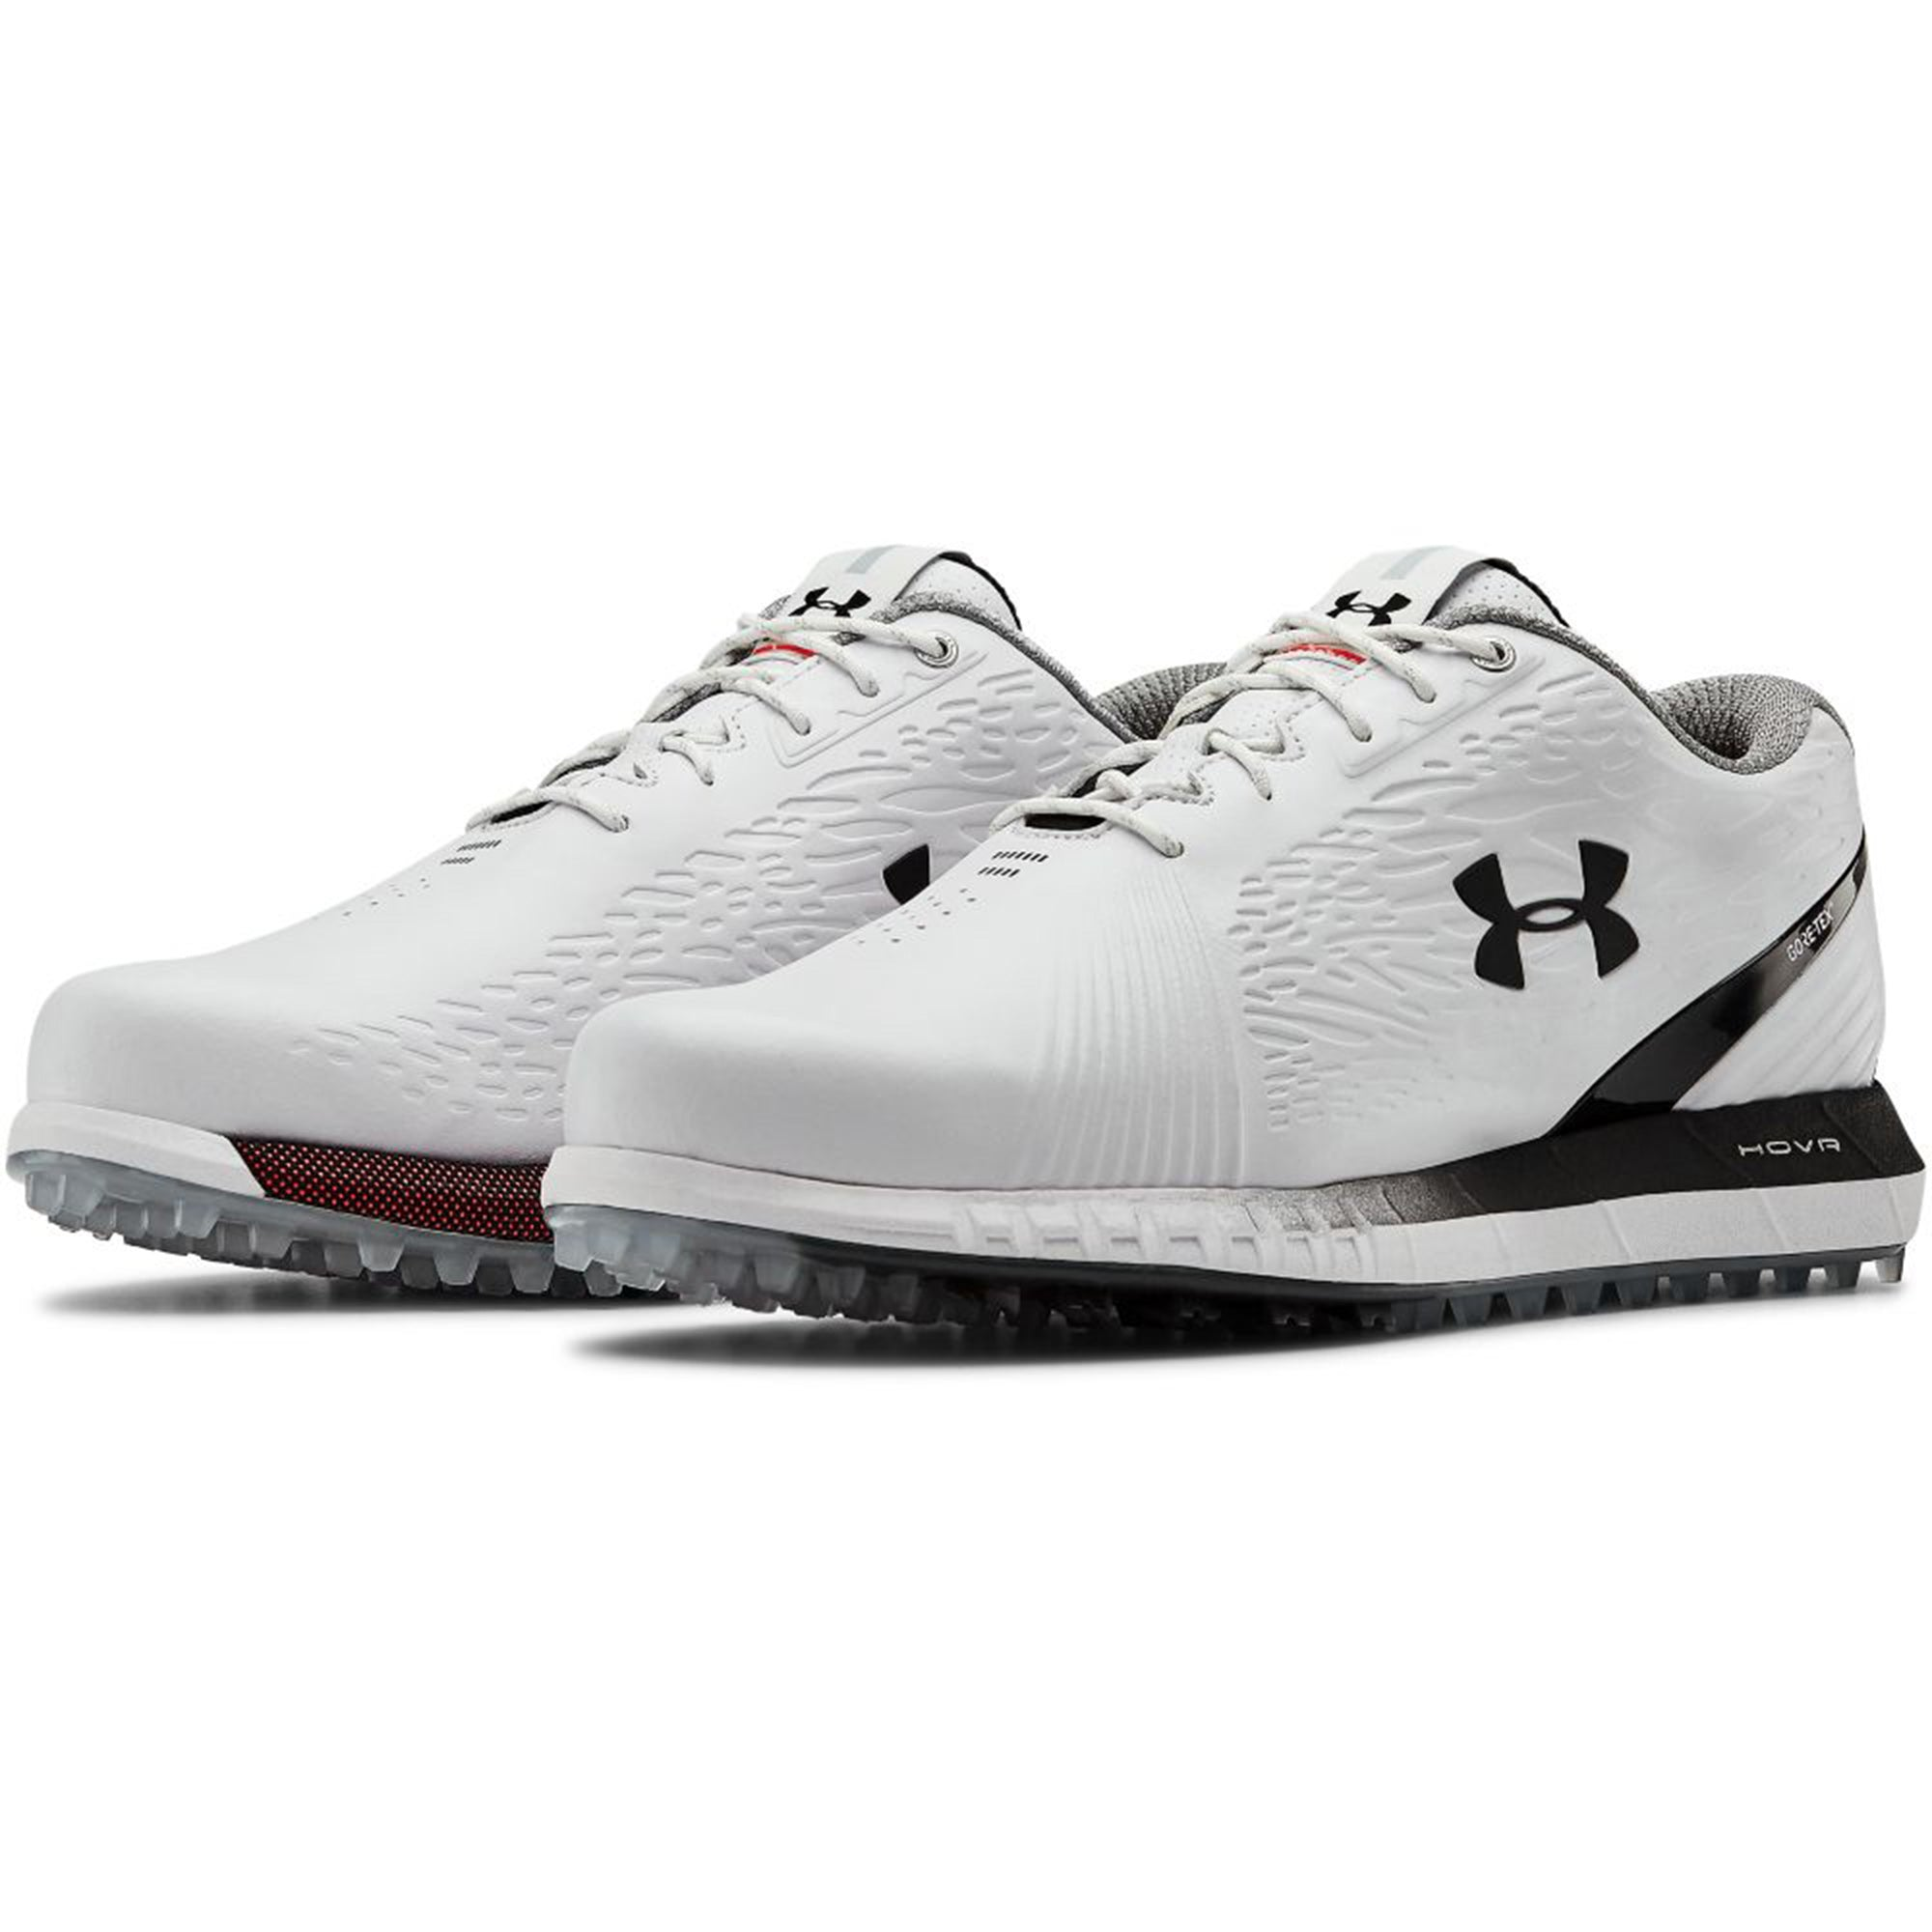 Under Armour HOVR Show SL GTX E Golf Shoes 3023328